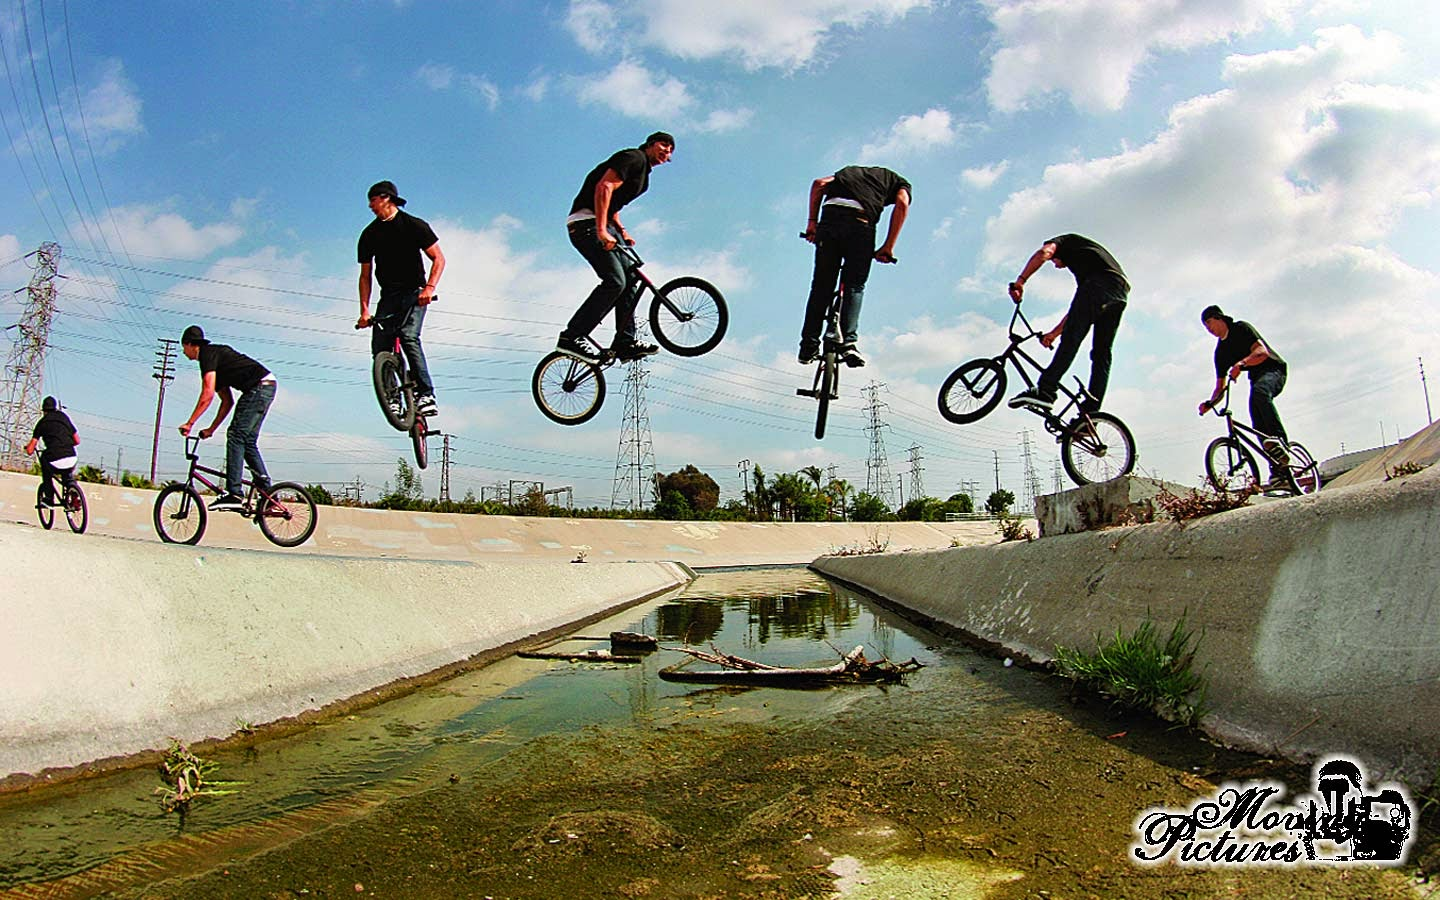 Bmx bike freestyle hd wallpapers hd wallpapers bmx freestyle wallpapers hd voltagebd Choice Image